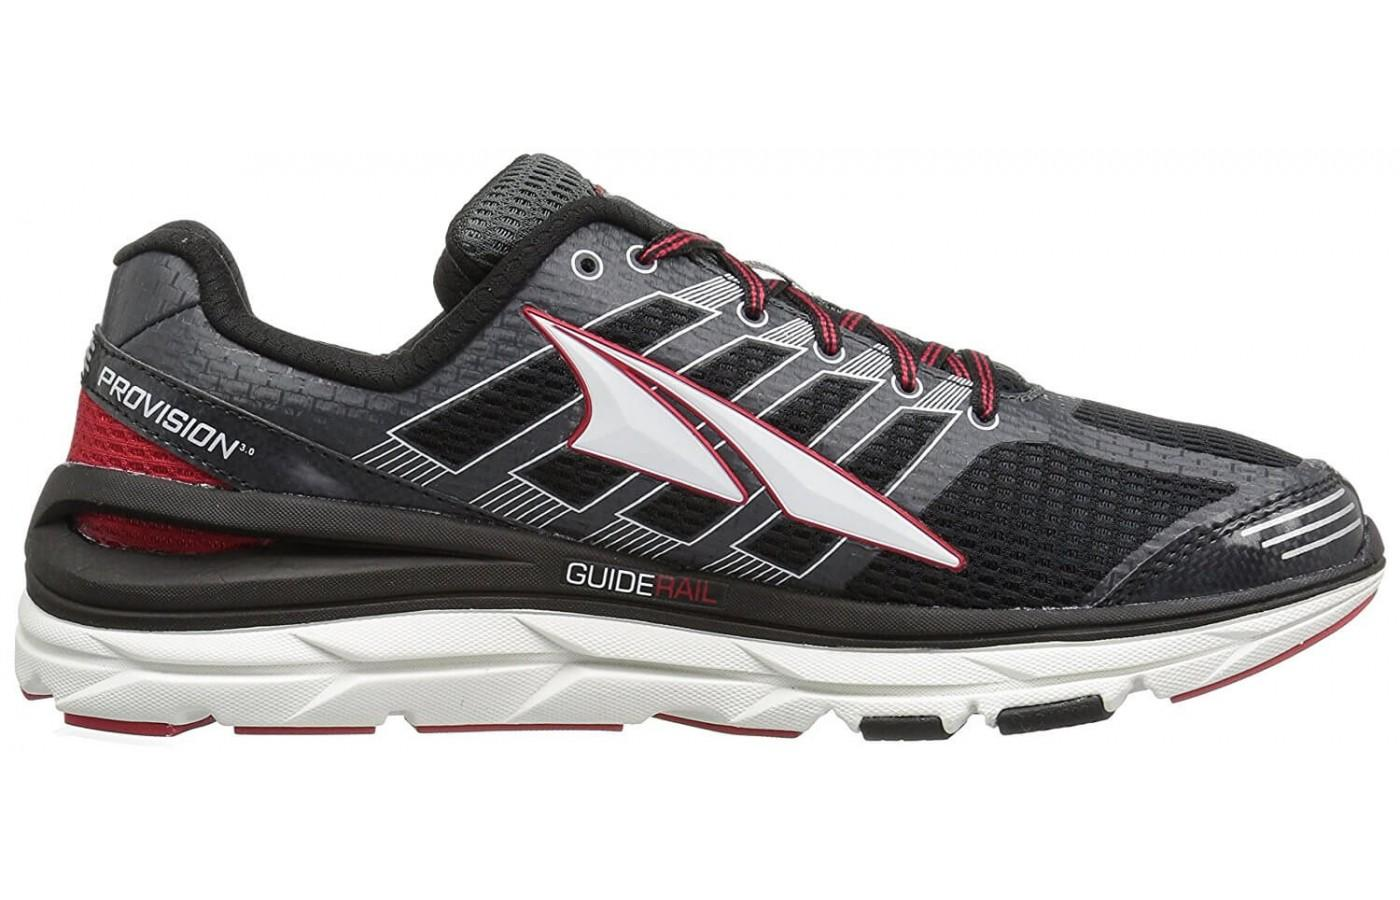 here's the profile of the Altra Provision 3.0